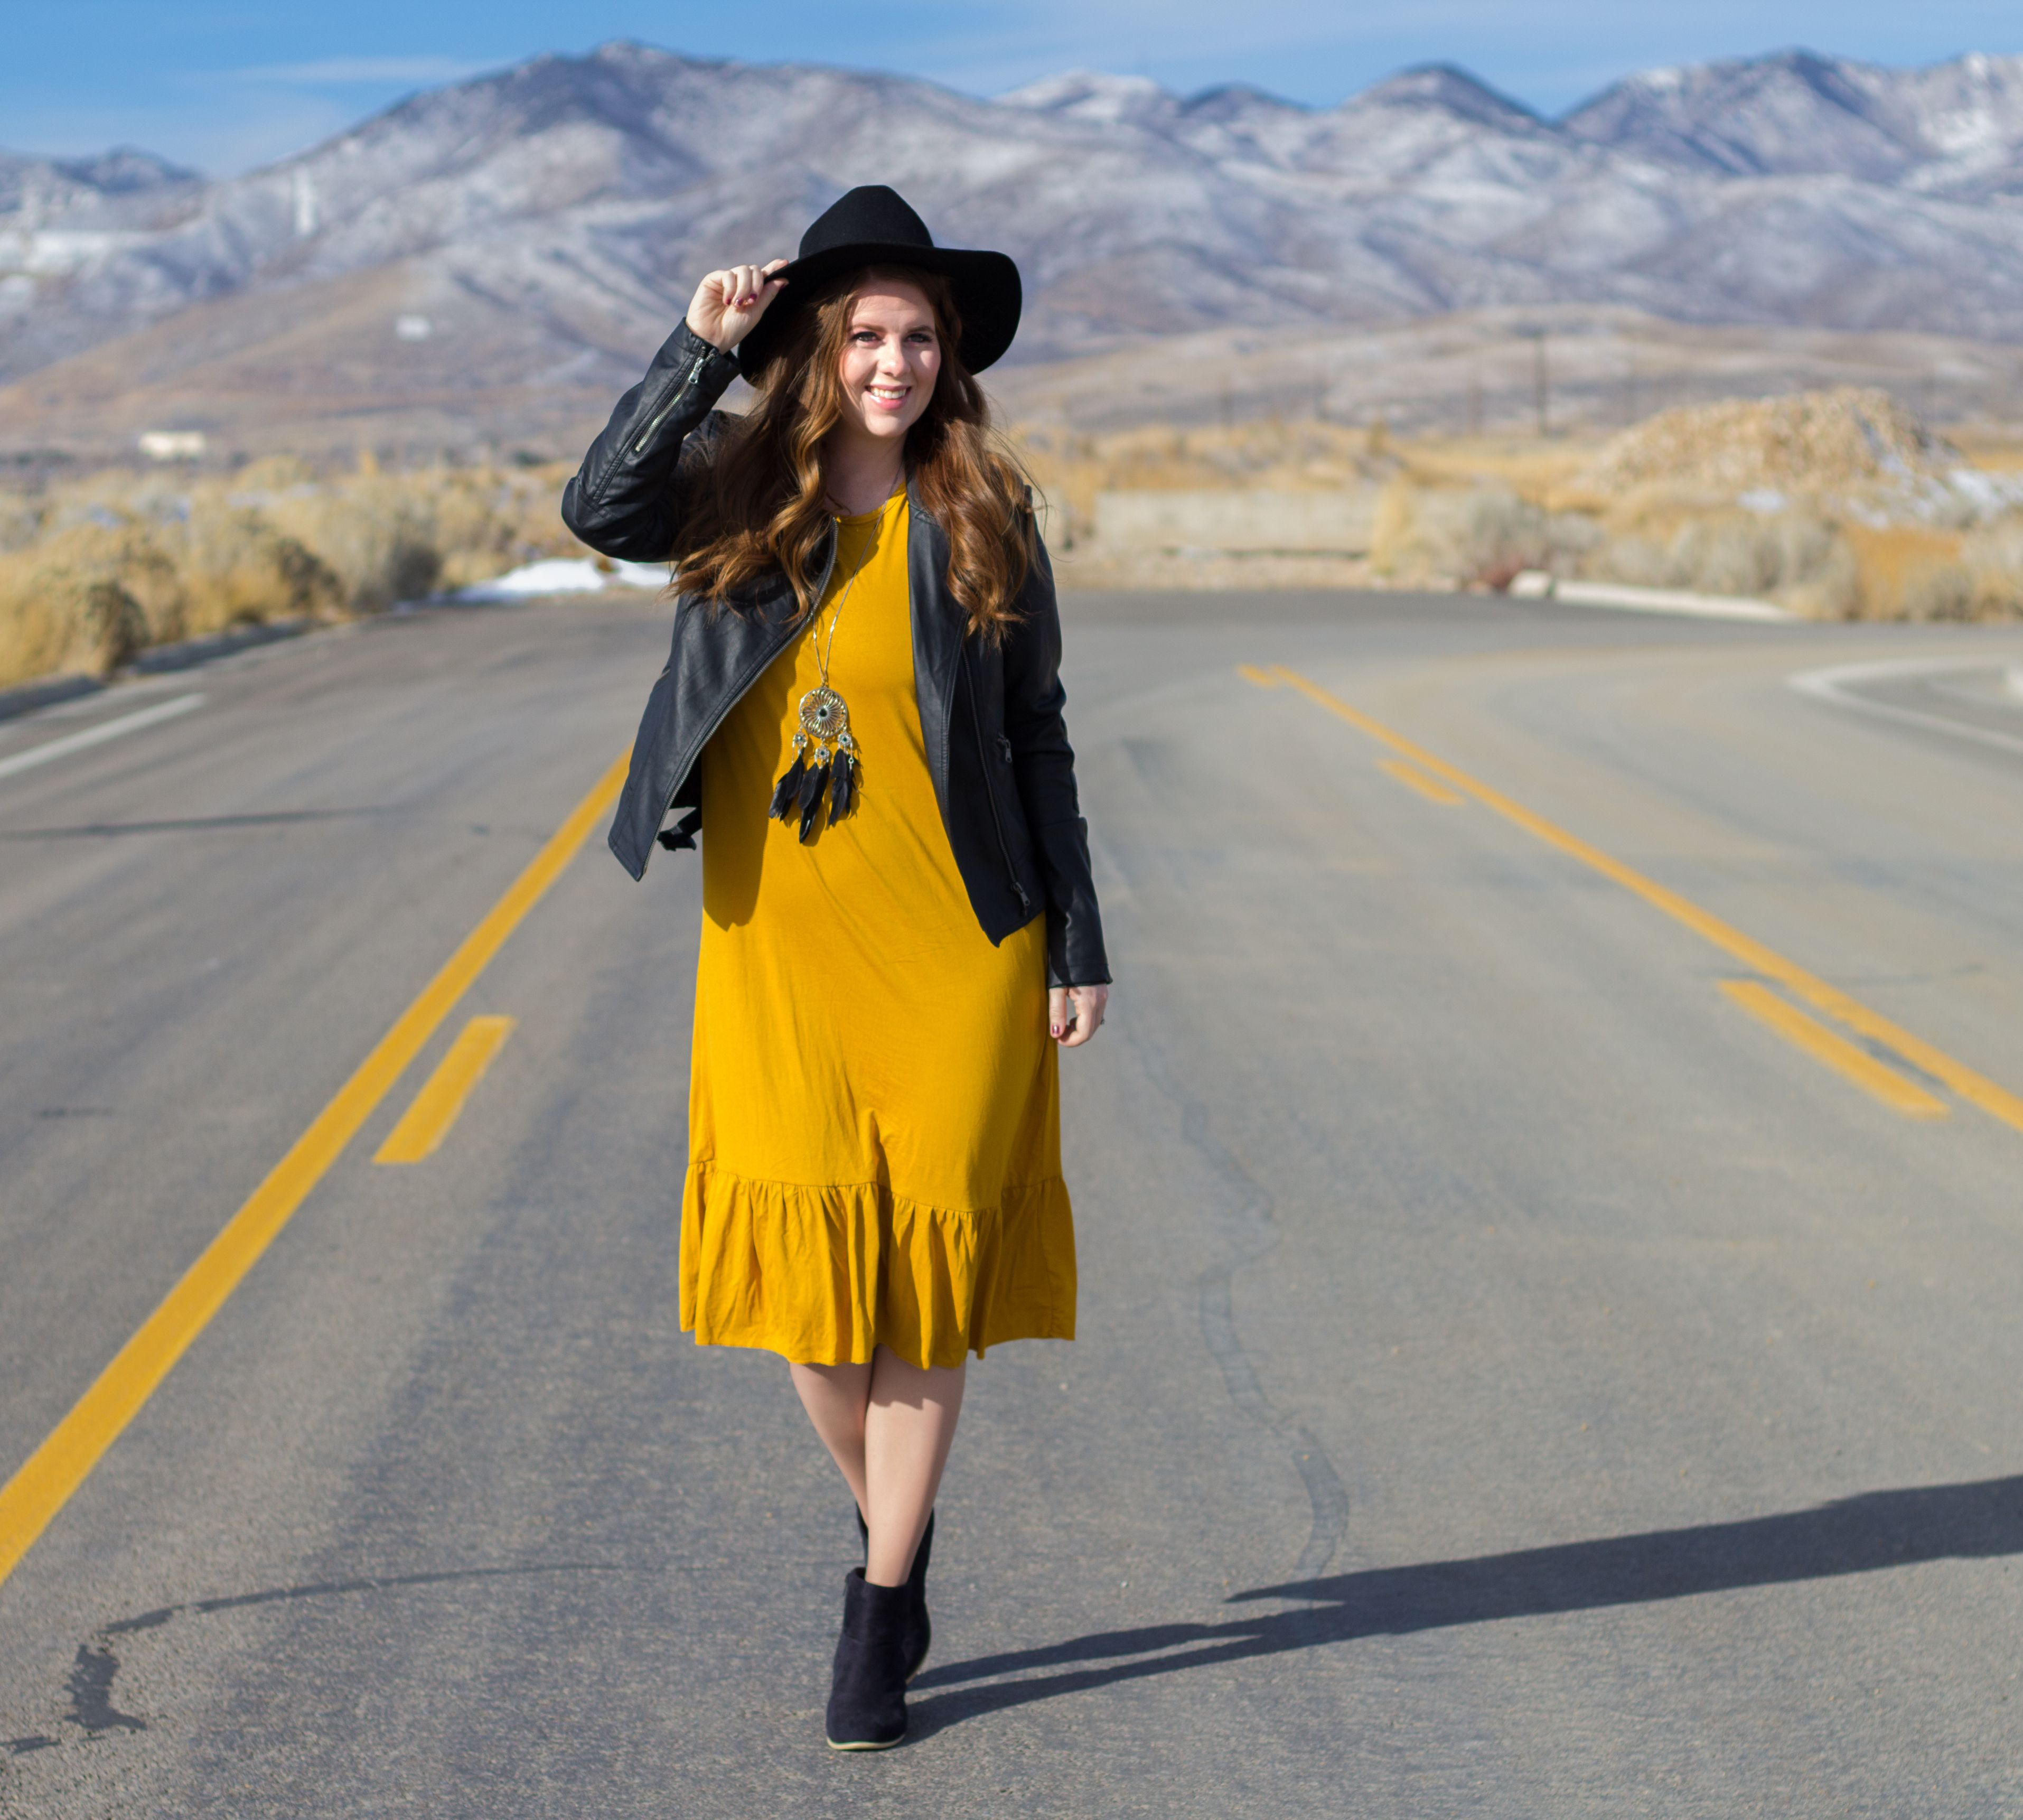 Styling a yellow mustard dress with large ruffles can get tricky. I made sure to pair my outfit with a faux leather jacket and wide brimmed hat to tone down the ruffle. I added a chic pair of black booties and a dream catcher necklace to add to the vibe.